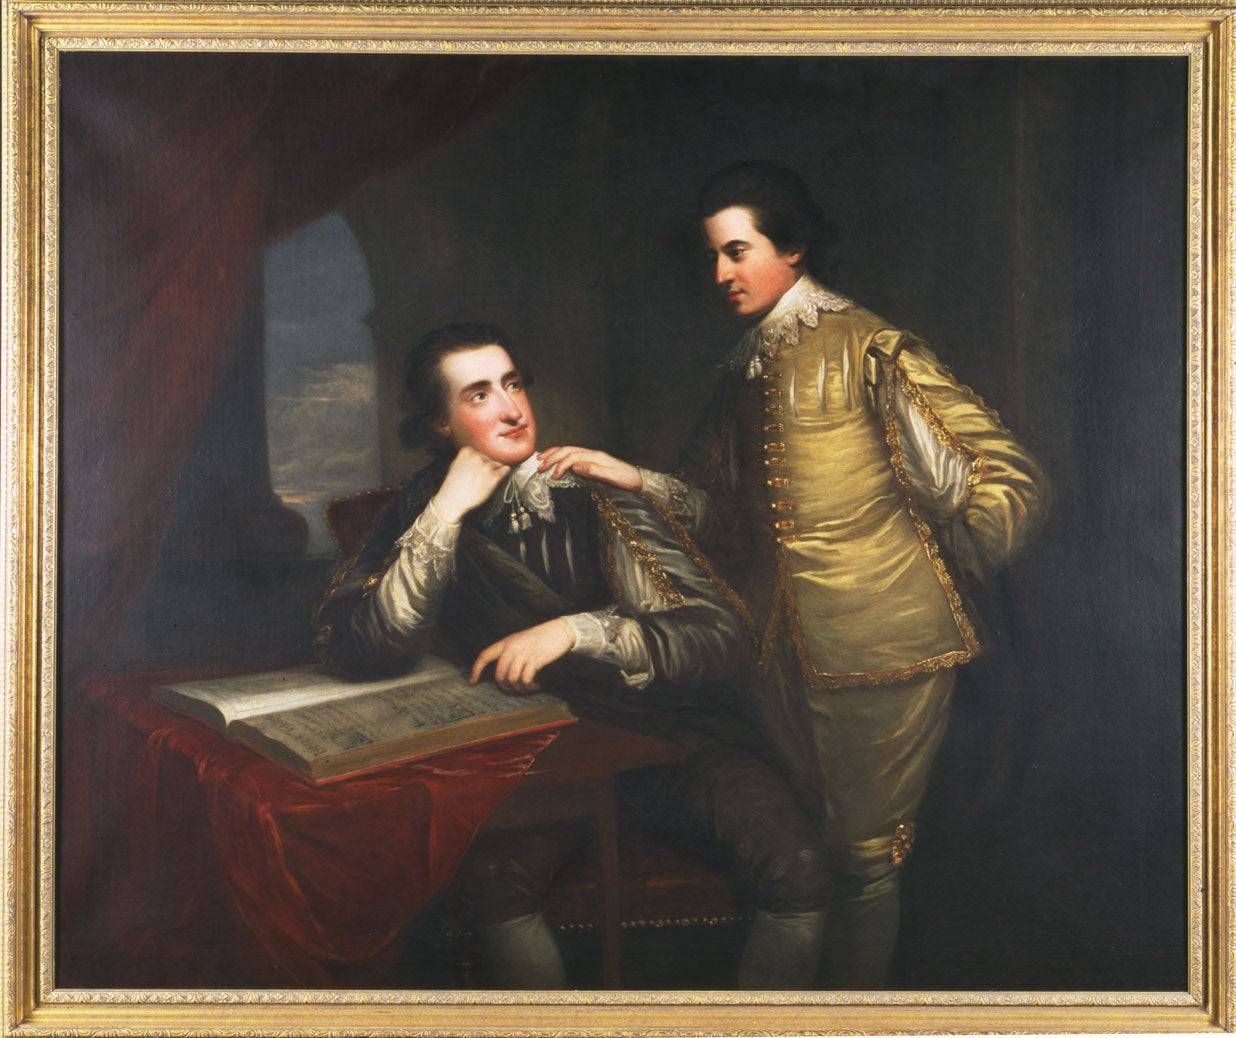 Portrait of George and Edward Finch-Hatton in Van Dyck Dress